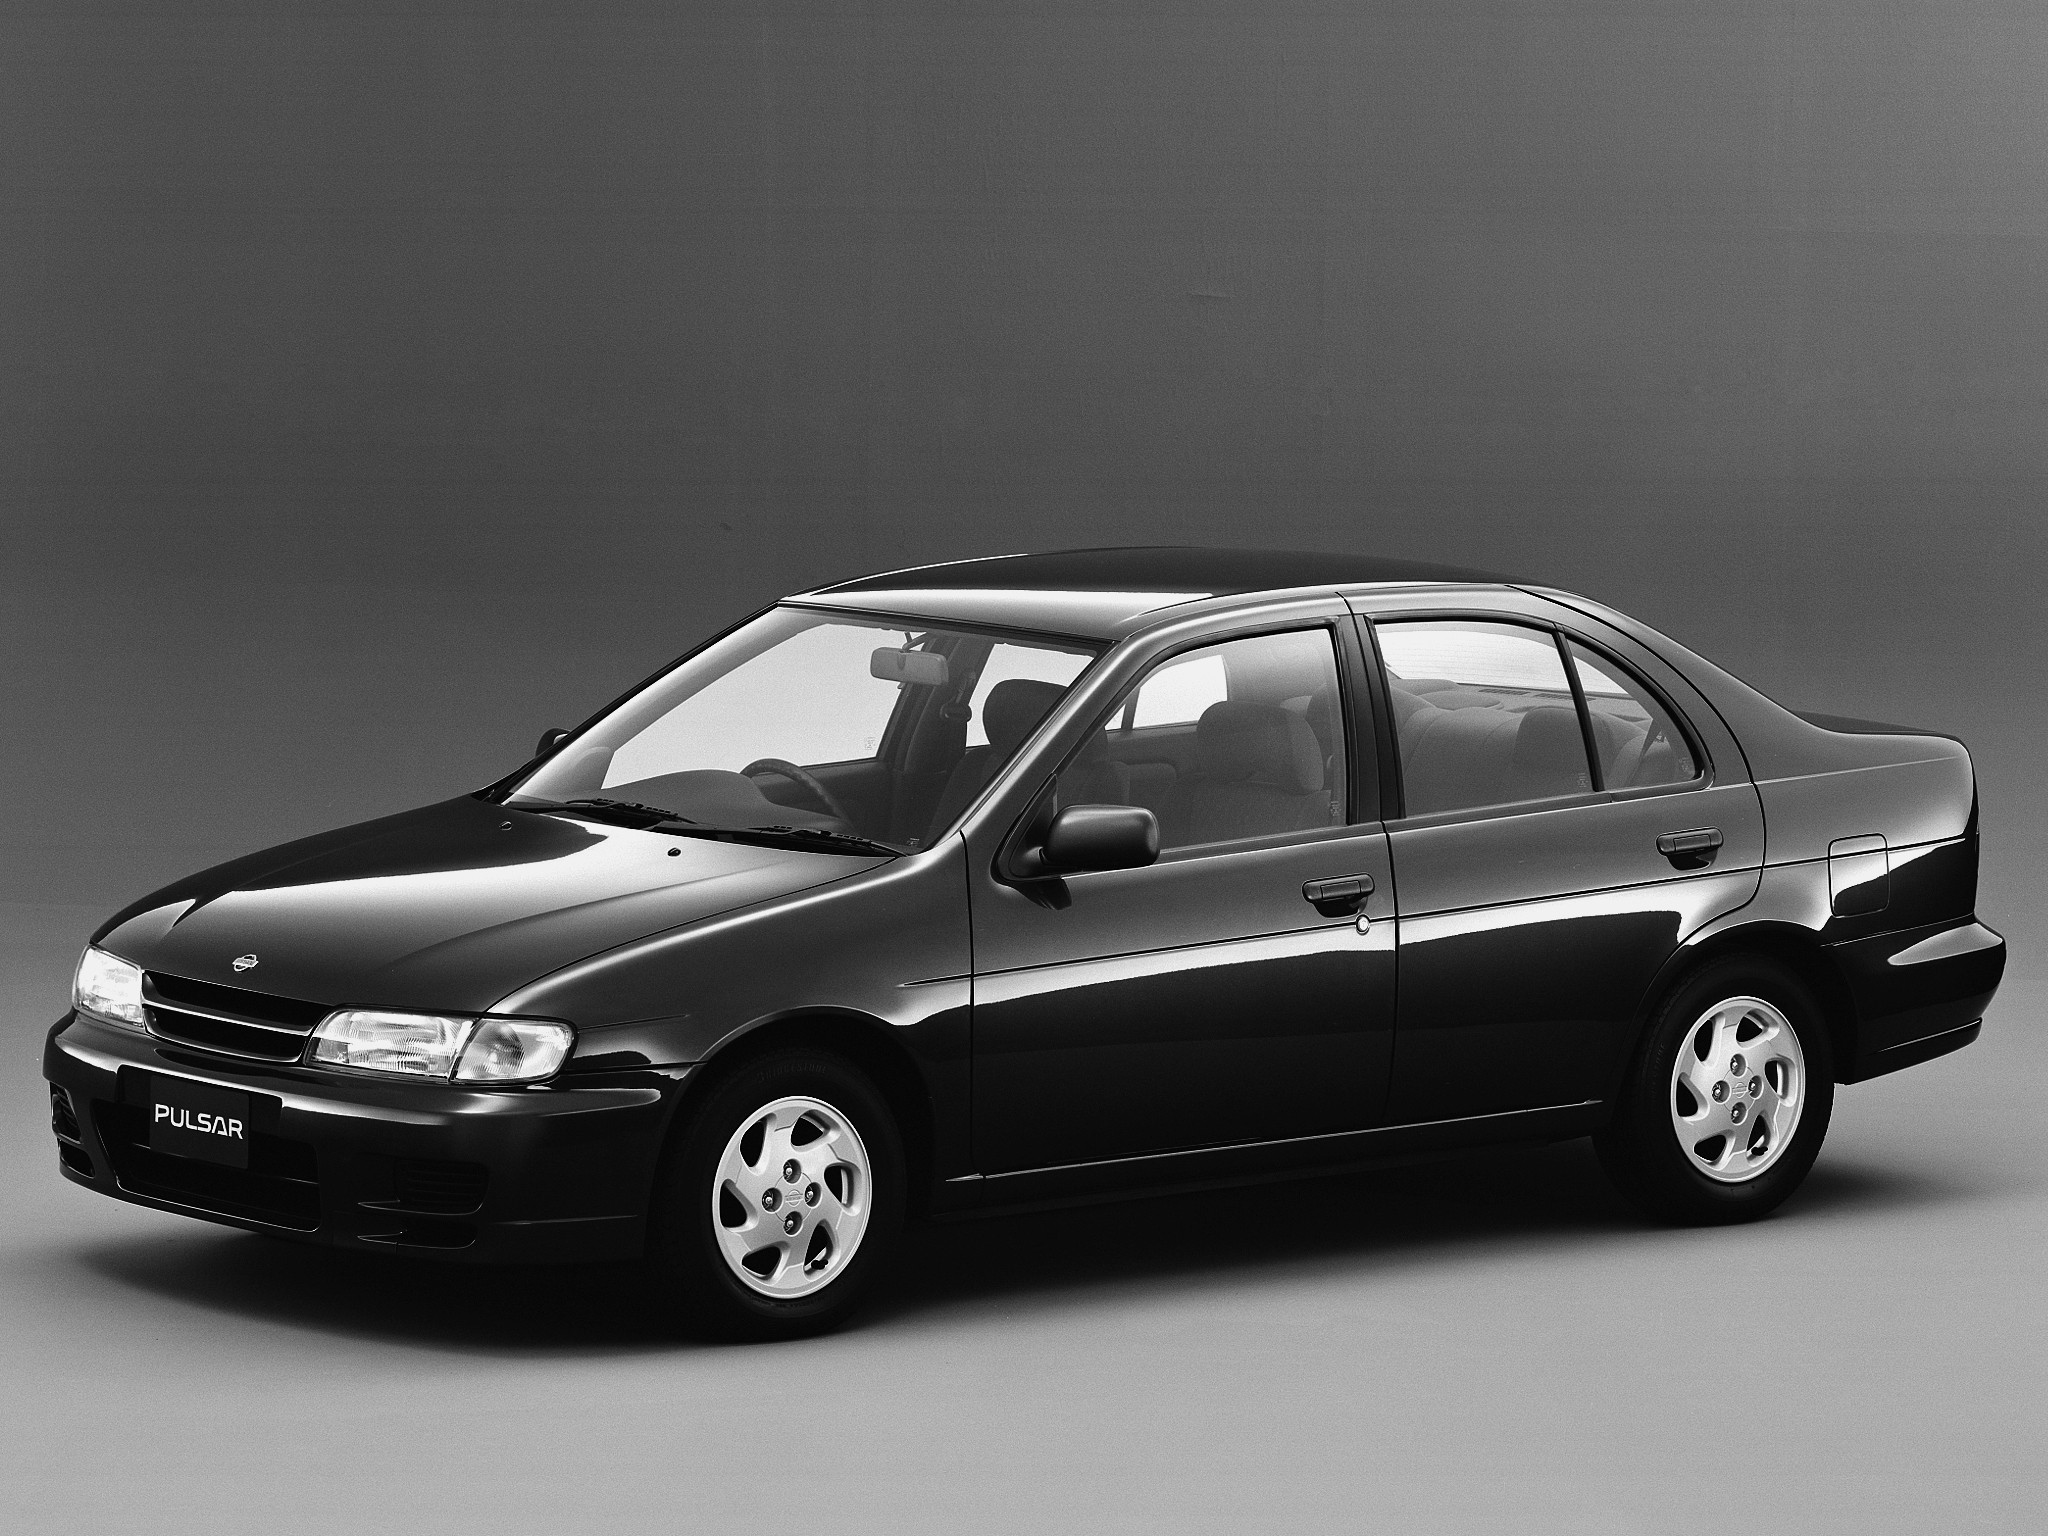 nissan almera pulsar 4 doors specs photos 1995 1996 1997 1998 1999 2000 autoevolution. Black Bedroom Furniture Sets. Home Design Ideas